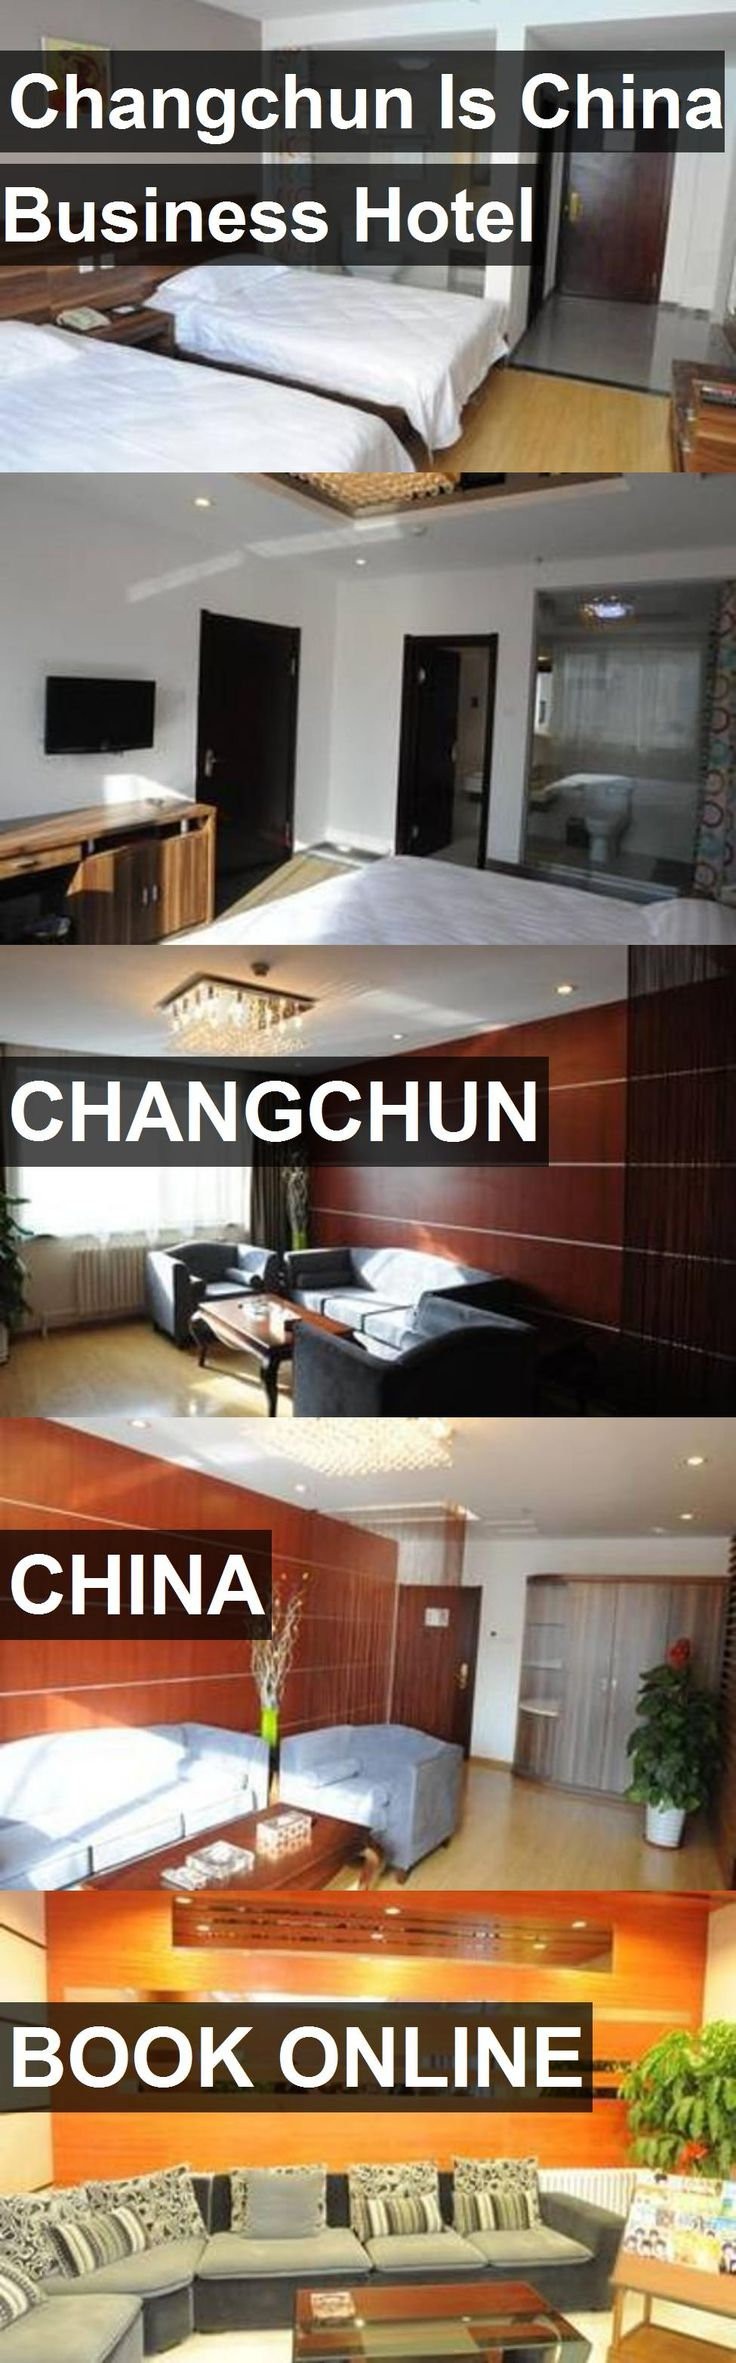 Changchun Is China Business Hotel in Changchun, China. For more information, photos, reviews and best prices please follow the link. #China #Changchun #travel #vacation #hotel